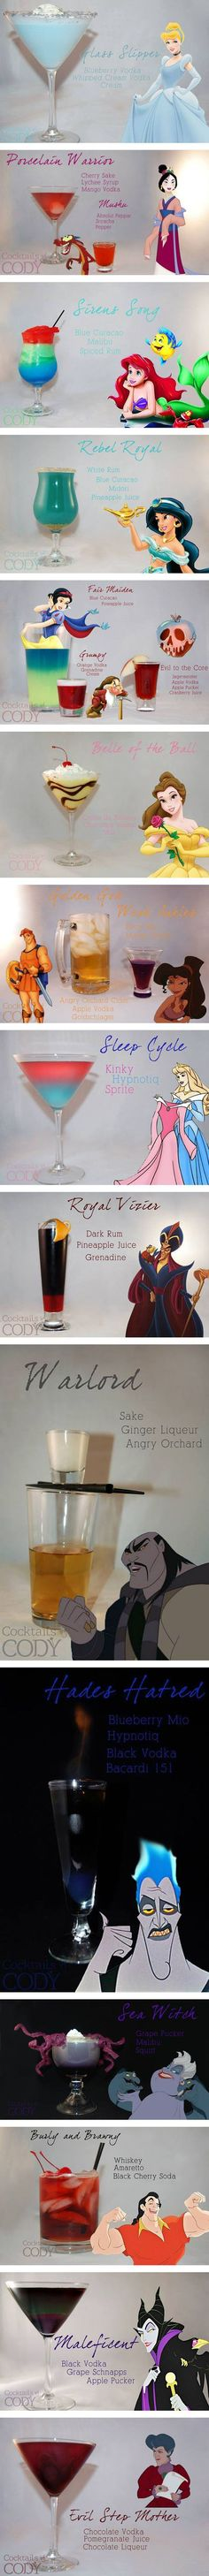 Disney princess themed cocktails. These will be served at my wedding considering I want a disney princess dress, princess cut ring, etc.: #DisneyWeddings